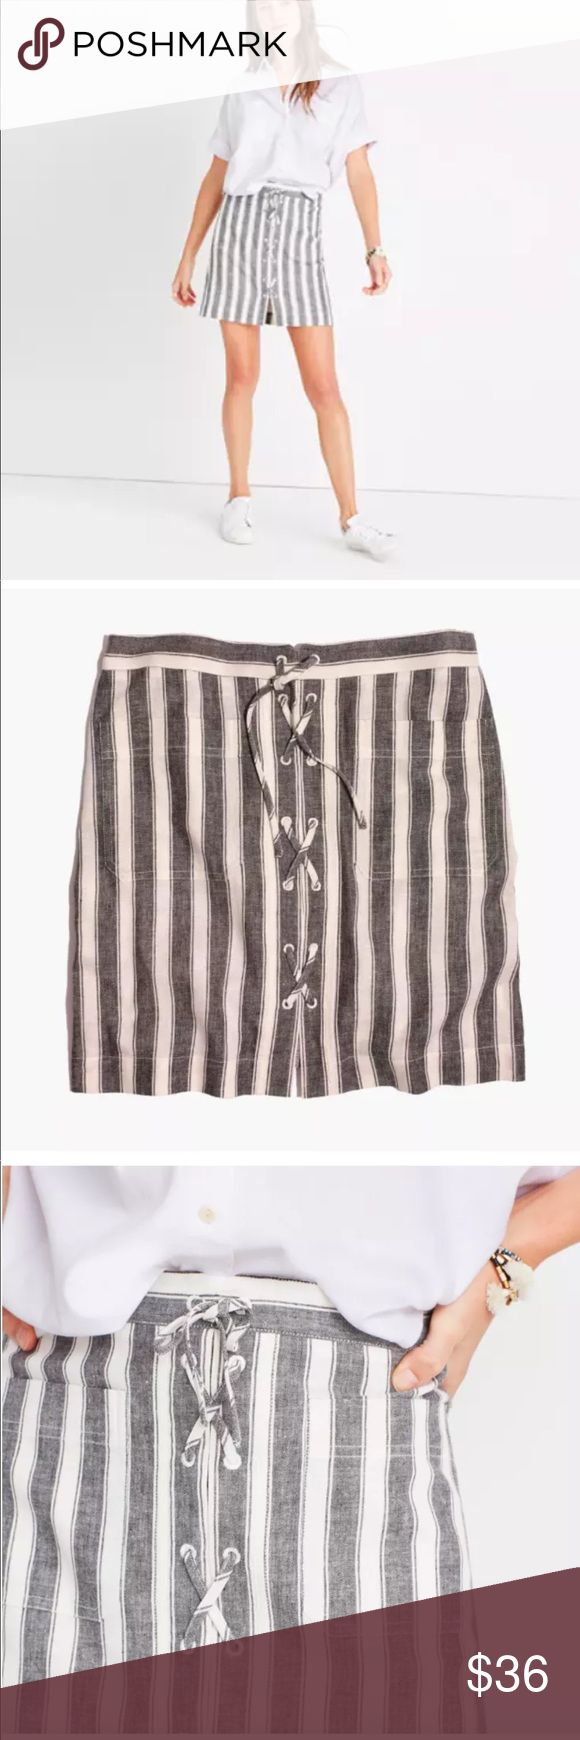 Madewell Laced Up Linen Striped Skirt Size 8 NEW! Brand new with tags! Striped linen/cotton skirt with a nautical vibe. Two patch pockets in the front. No fuss back zip up for convenience. 17 inches long. Machine washable. Smoke free home. Madewell Skirts Mini